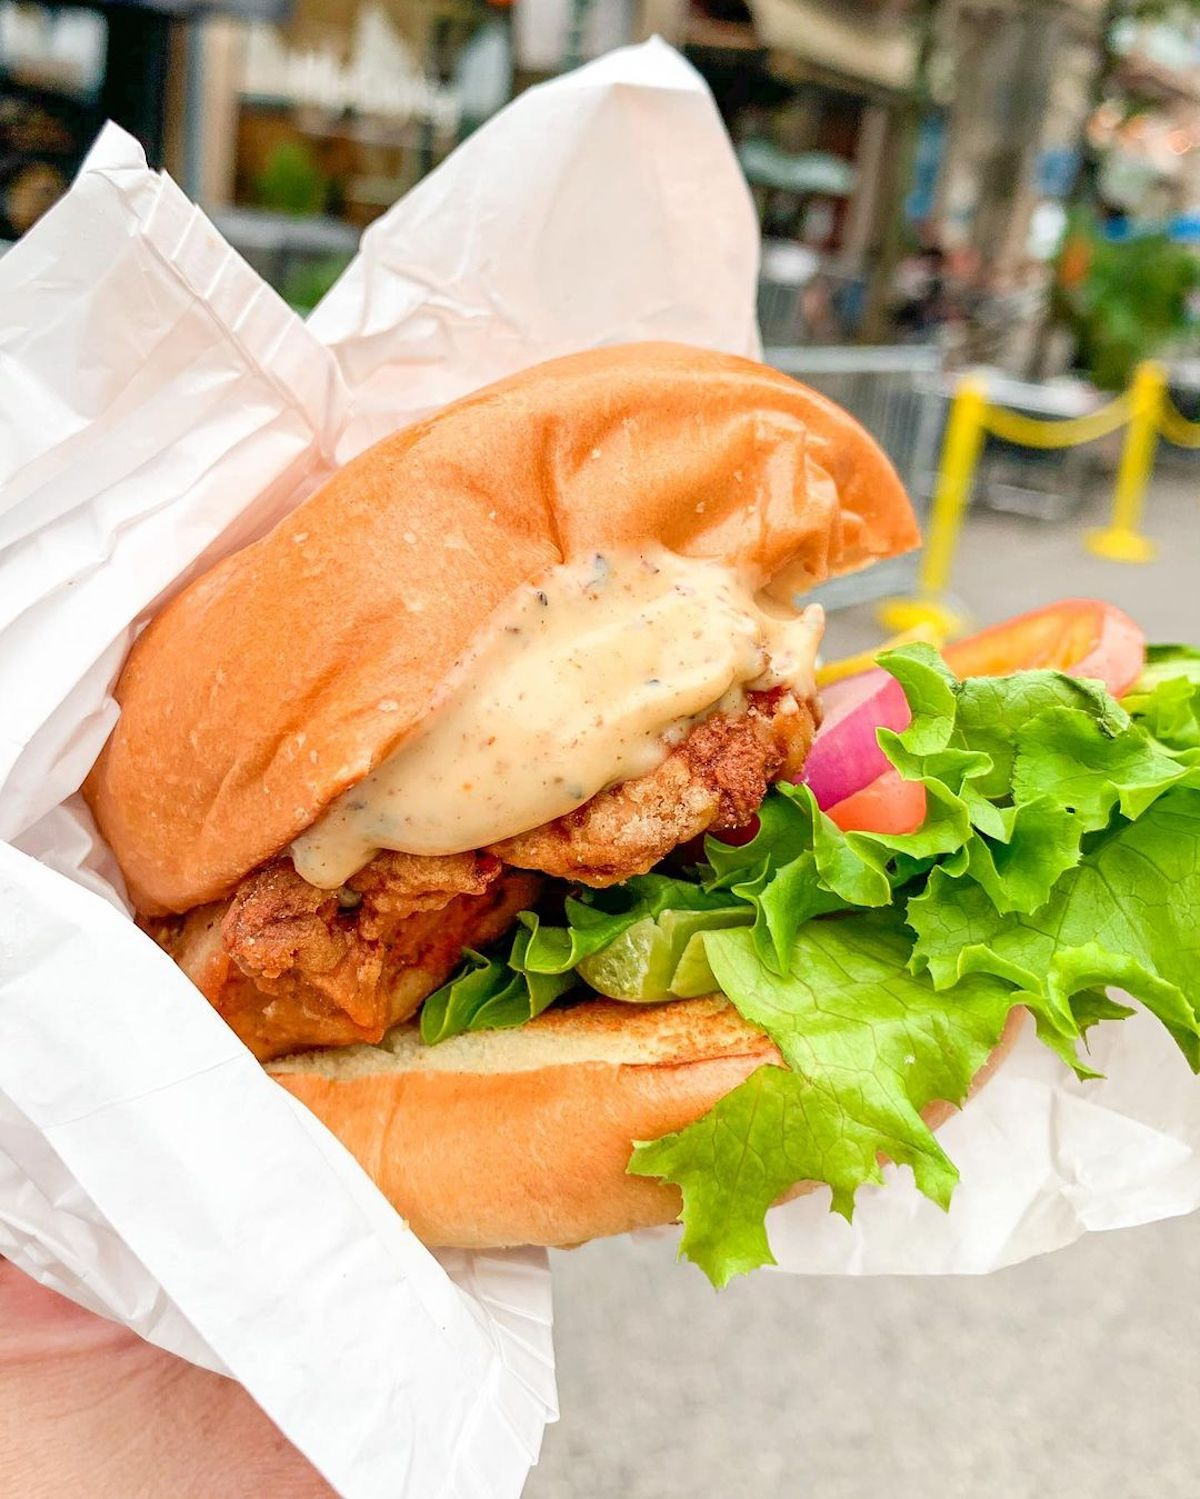 HipCityVeg to Sling Burgers in Union Square